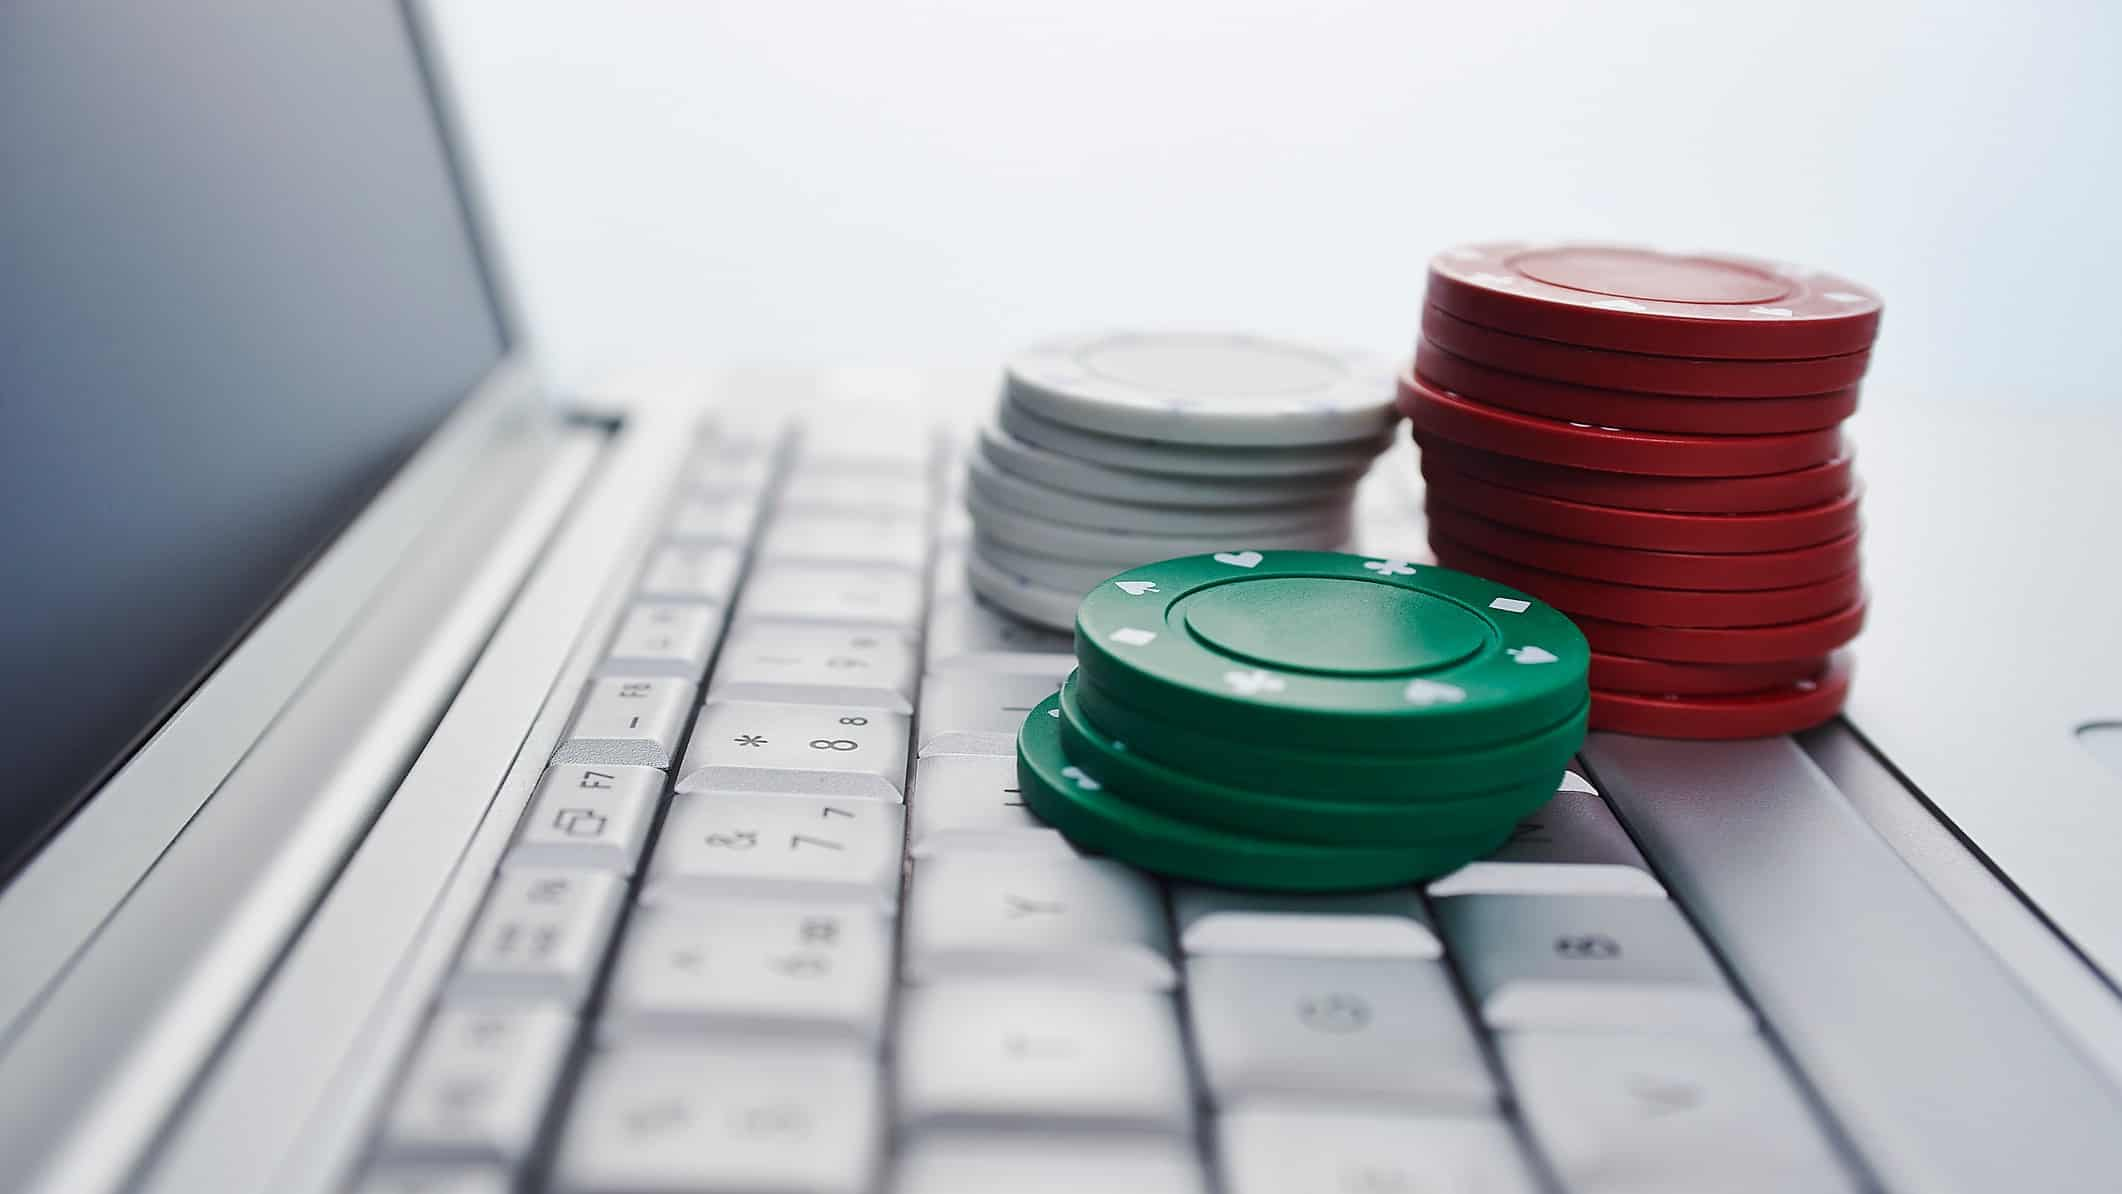 Poker chips on a laptop keyboard to symbolise gambling on ASX shares